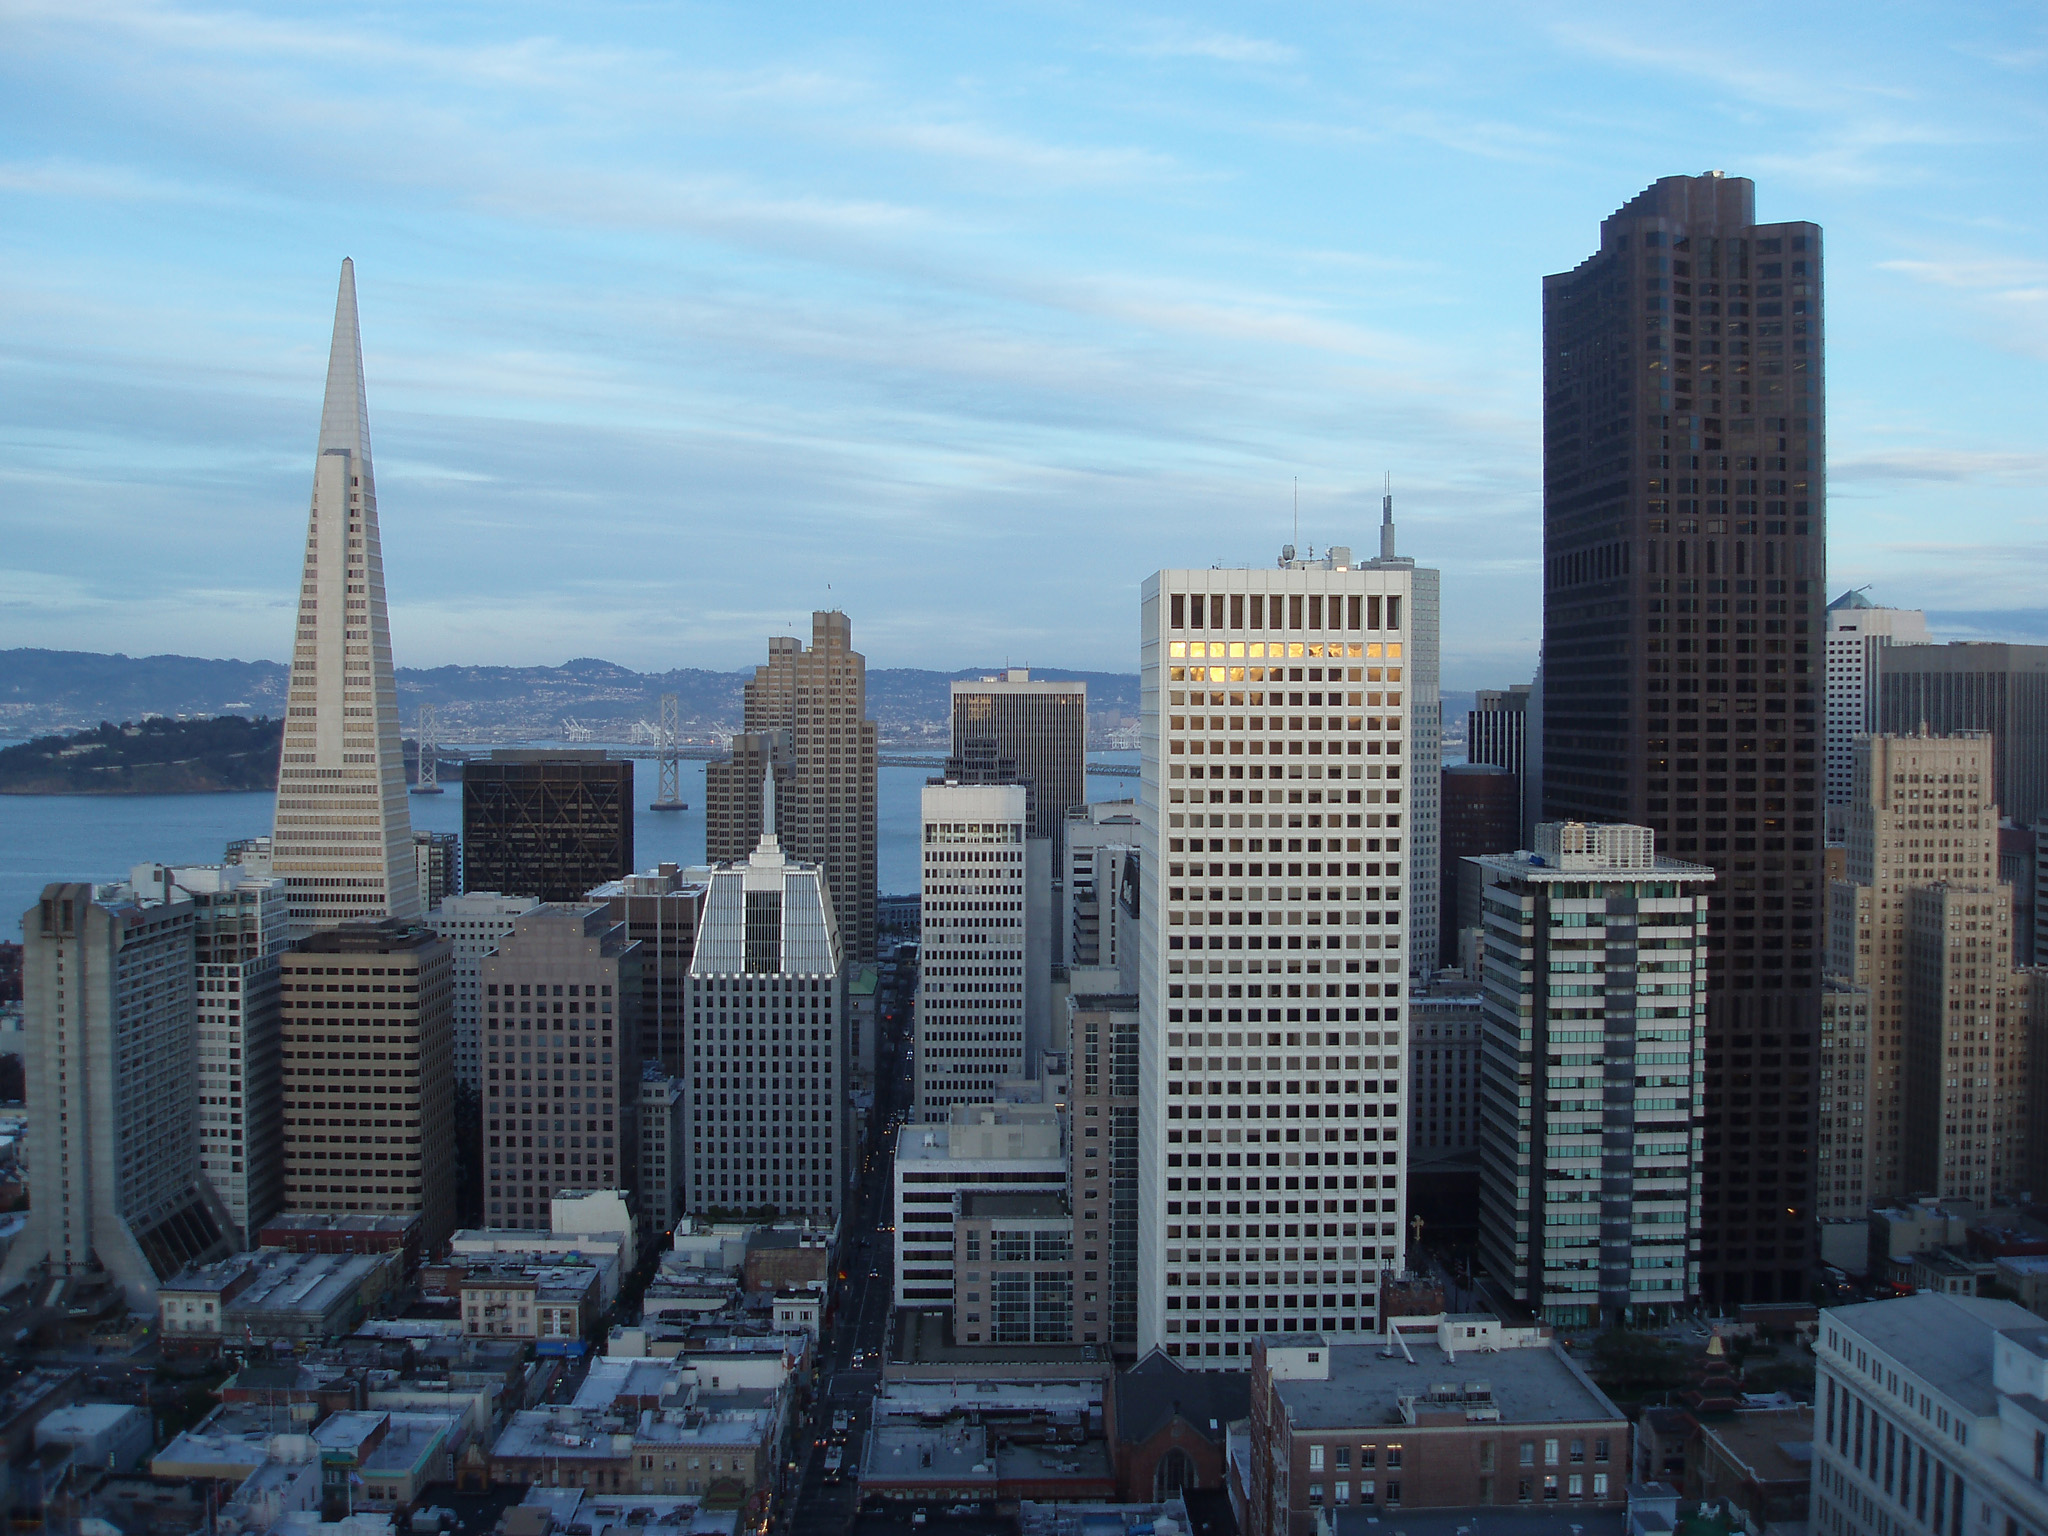 San Francisco is so Expensive that even making $82,000 can Qualify as Low-Income